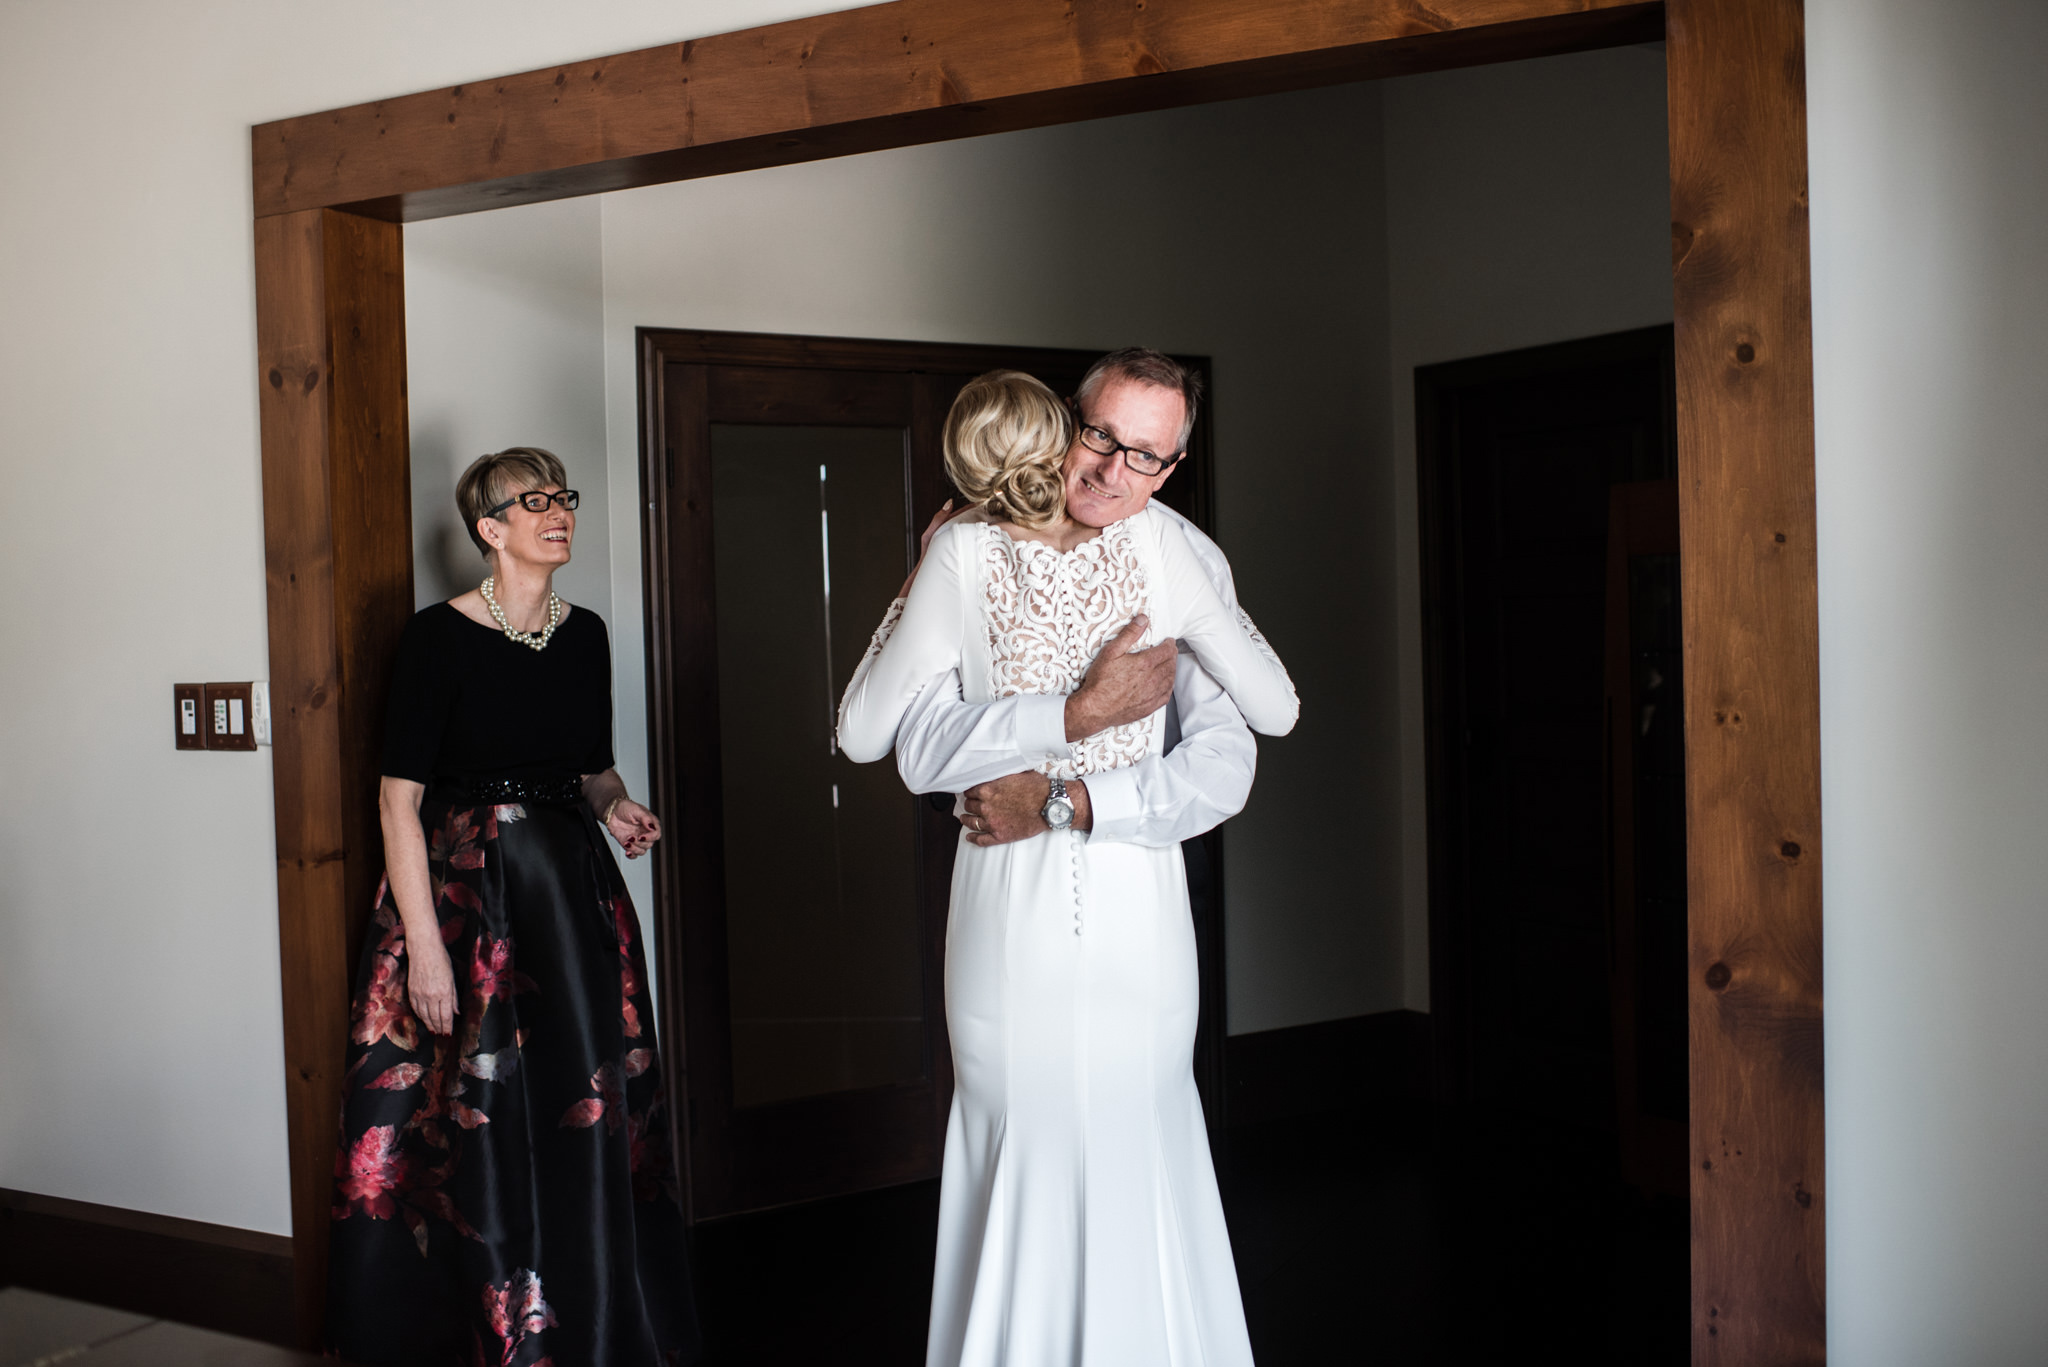 062-first-look-with-father-bride-wedding-photographer-toronto.jpg